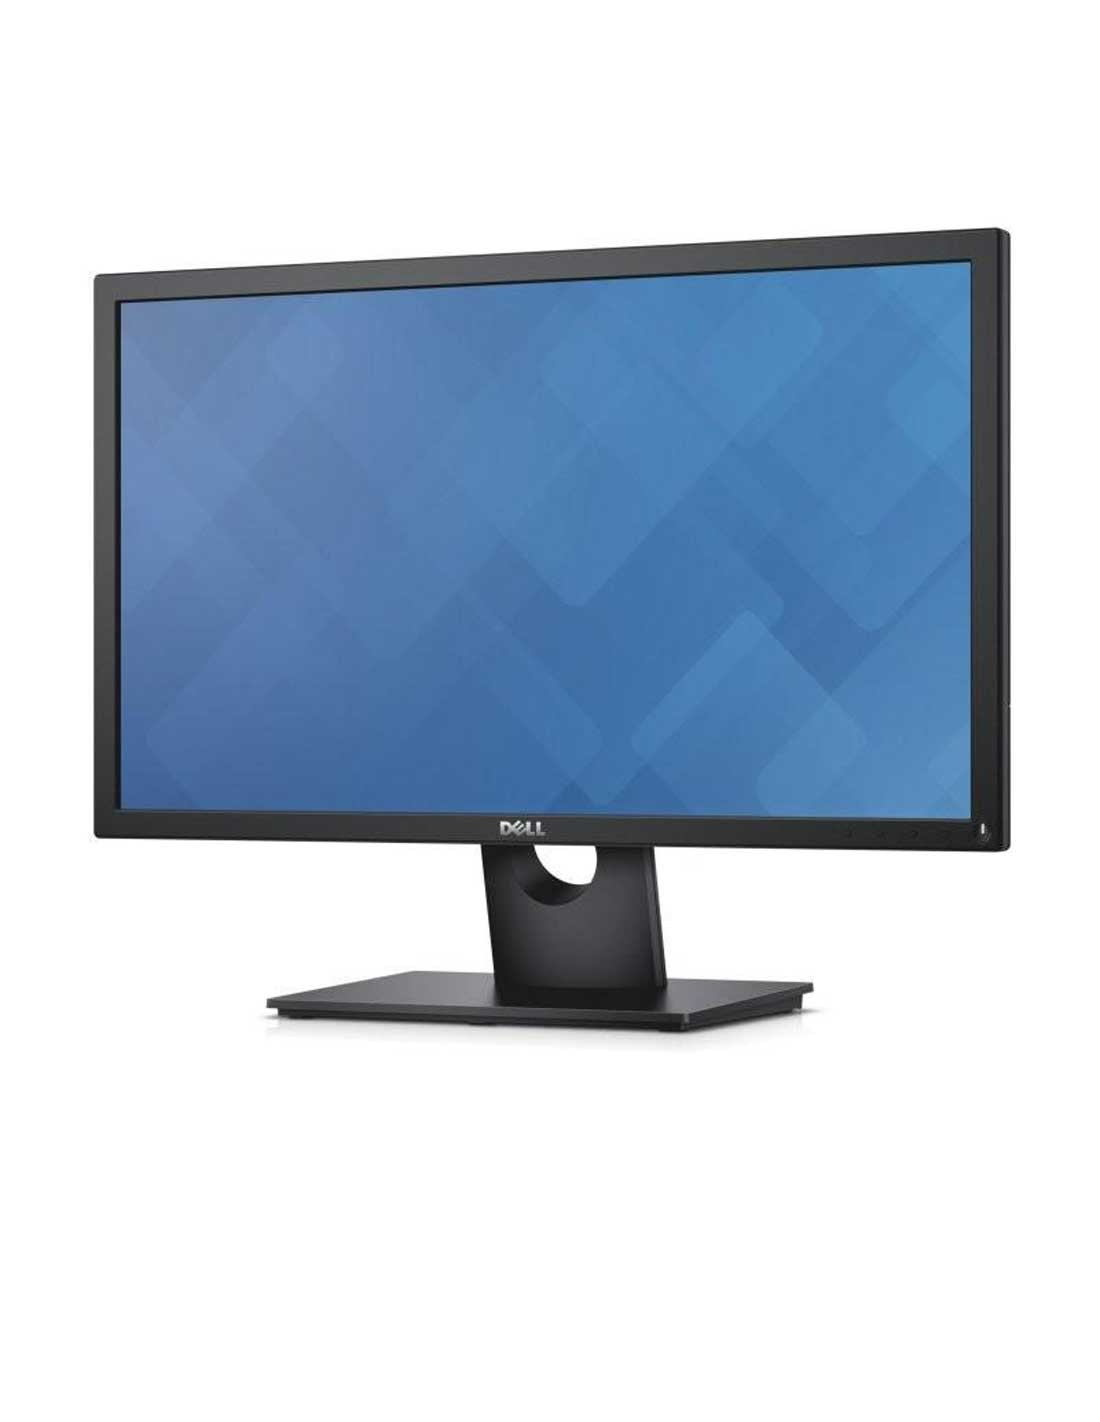 Dell 24 Monitor E2418HN images and photos in Dubai computer store